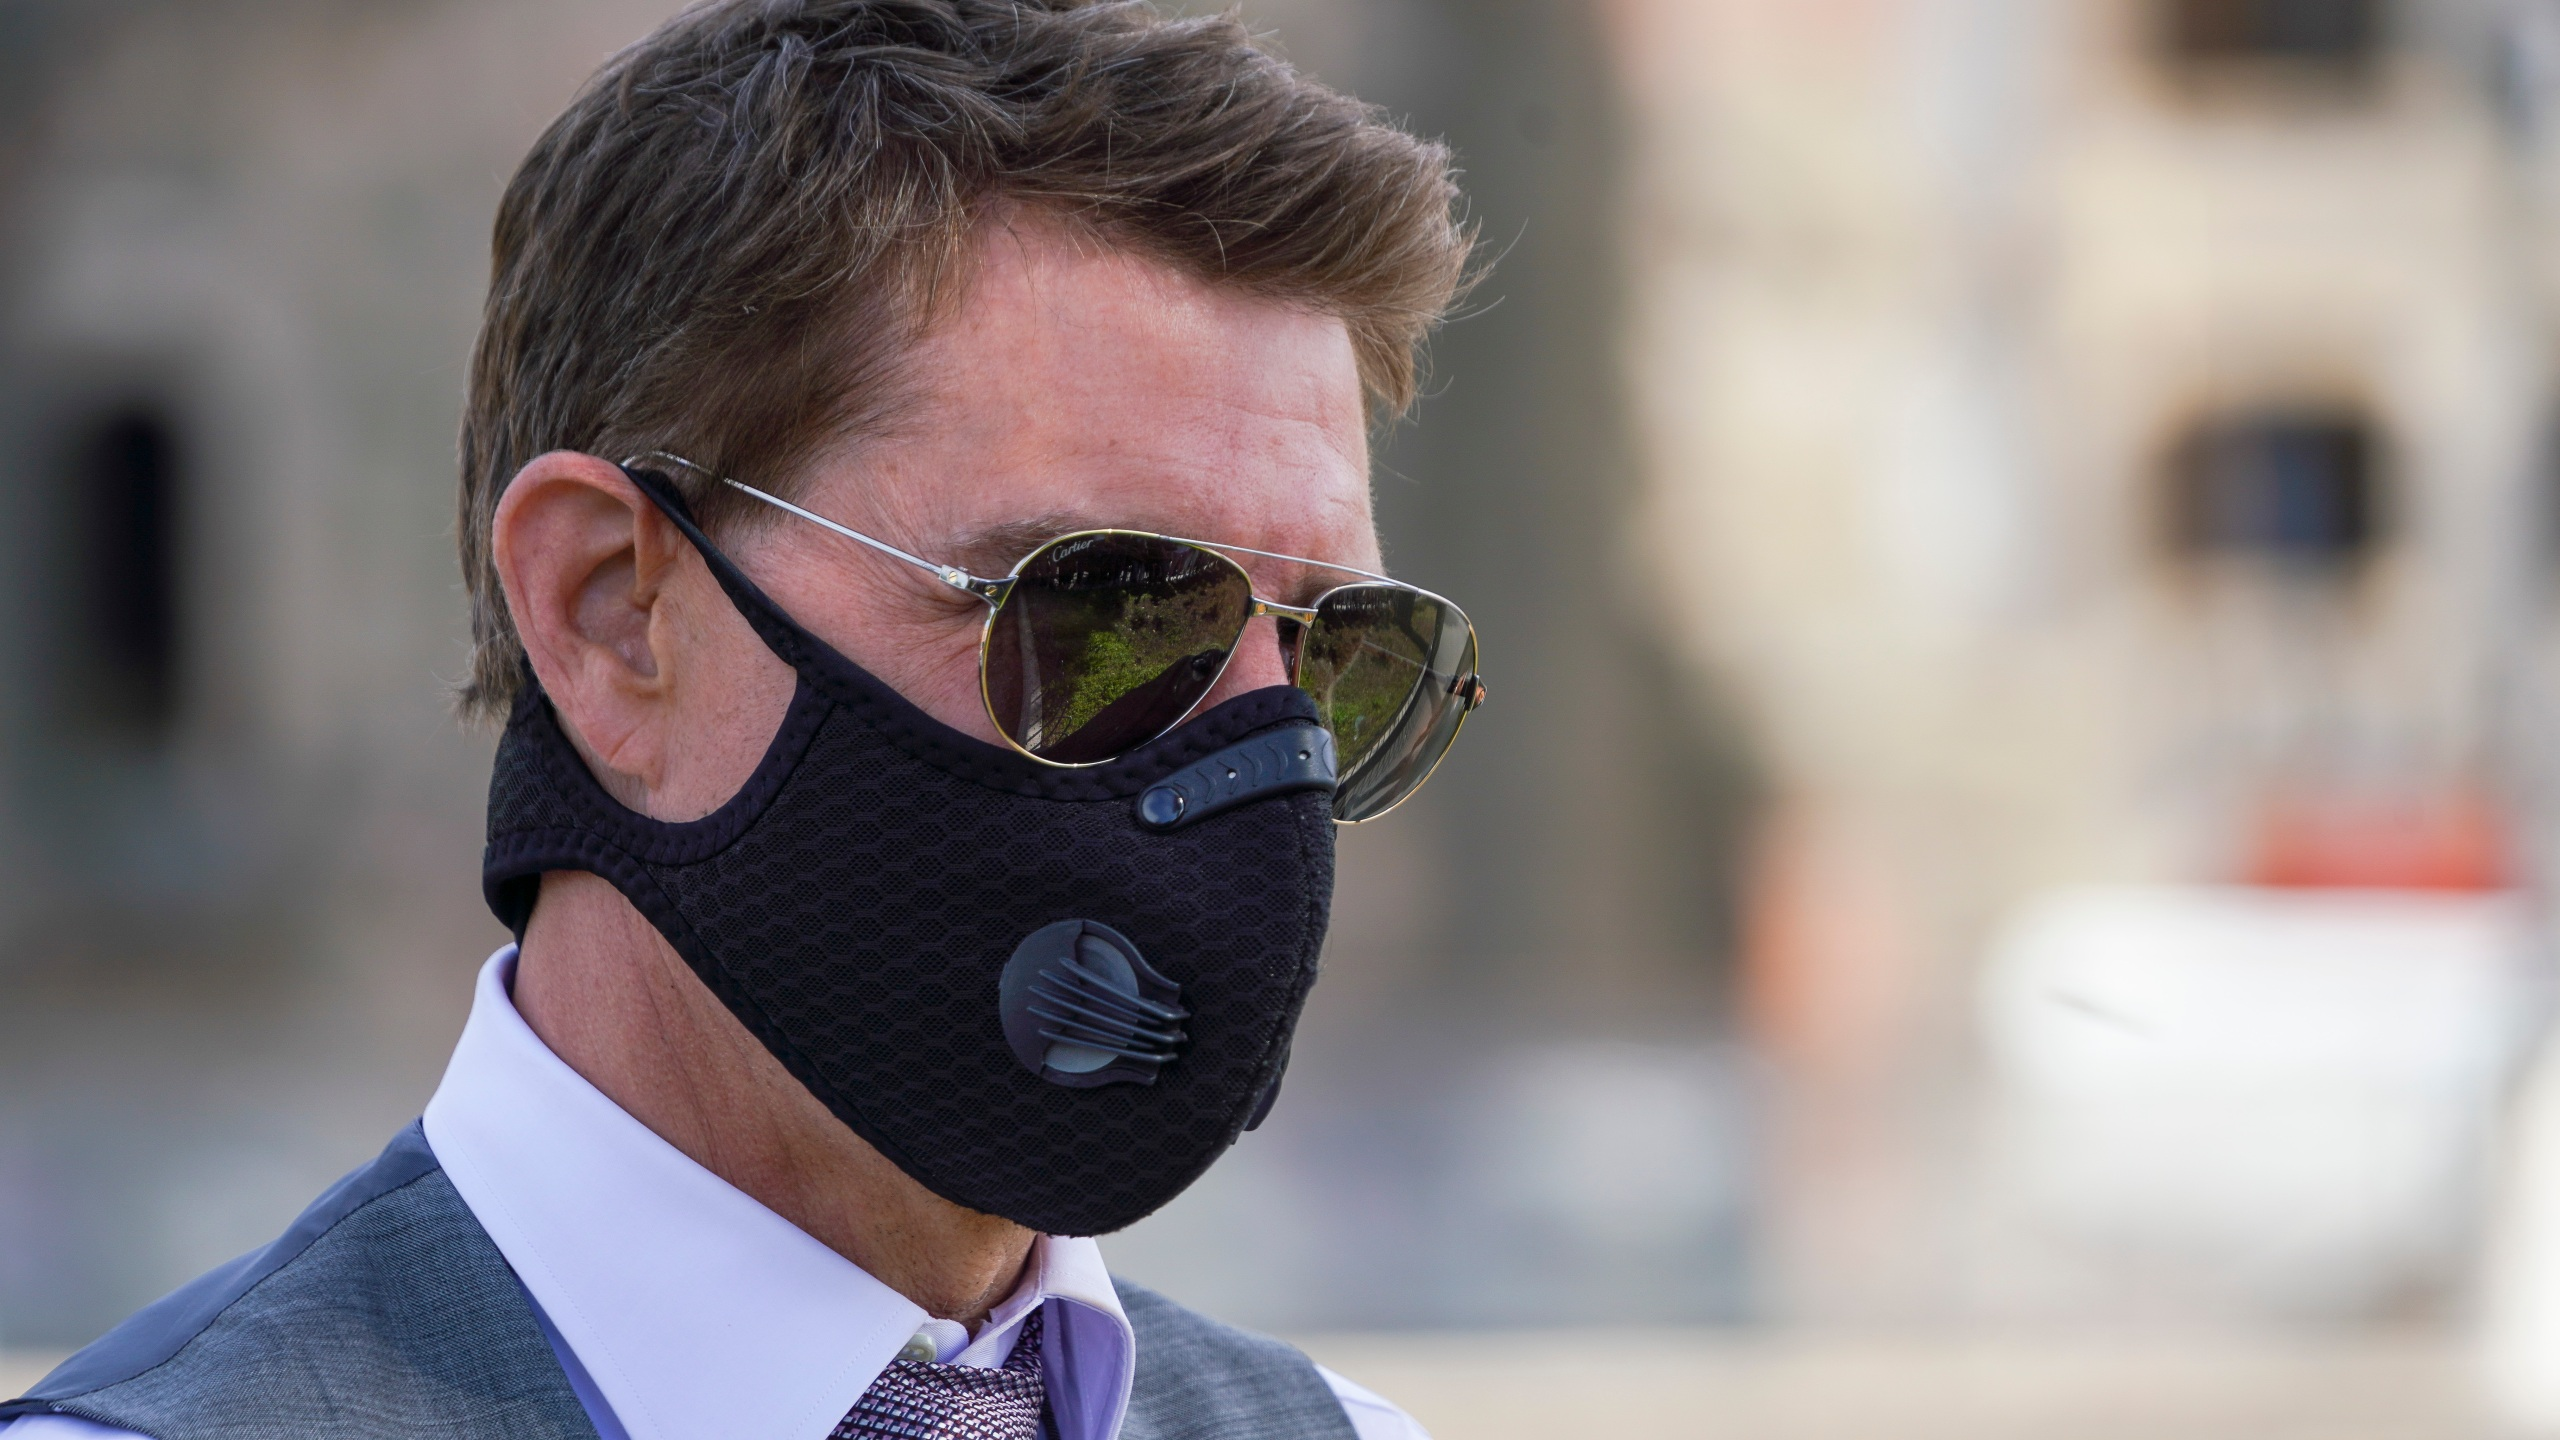 n this Tuesday, Oct. 13, 2020, file photo, actor Tom Cruise wears a face mask to prevent the spread of COVID-19 as he greets fans during a break from shooting Mission Impossible 7, along Rome's Fori Imperiali avenue. (AP Photo/Andrew Medichini, file)